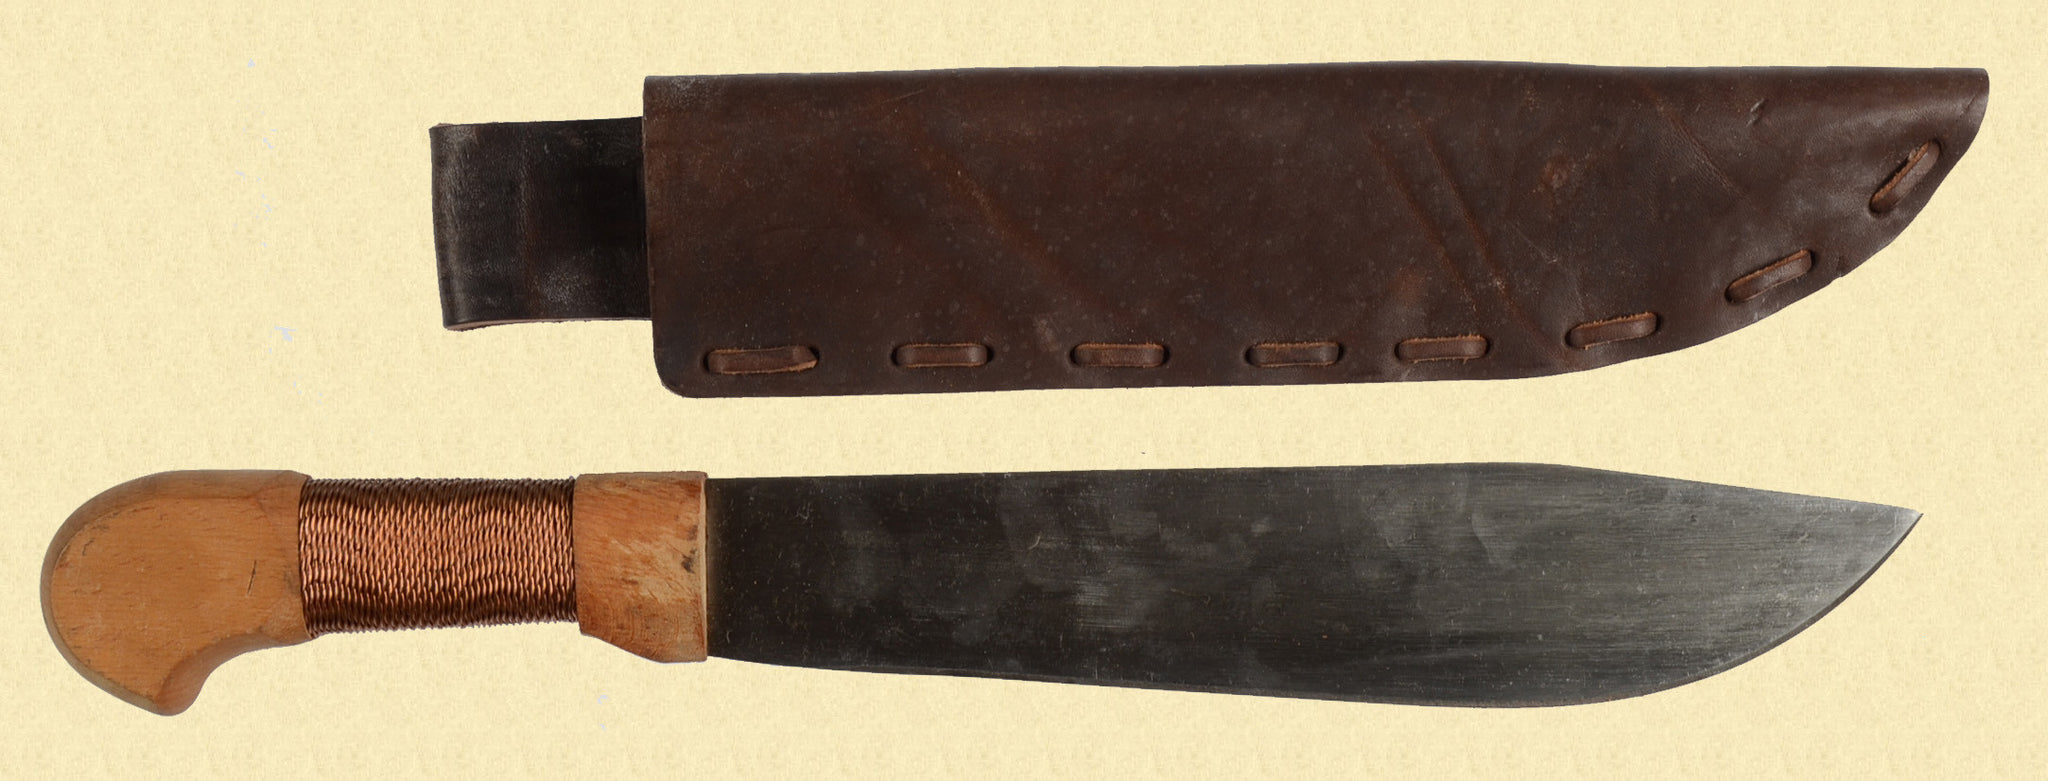 MARTINDALE NO.43 KNIFE